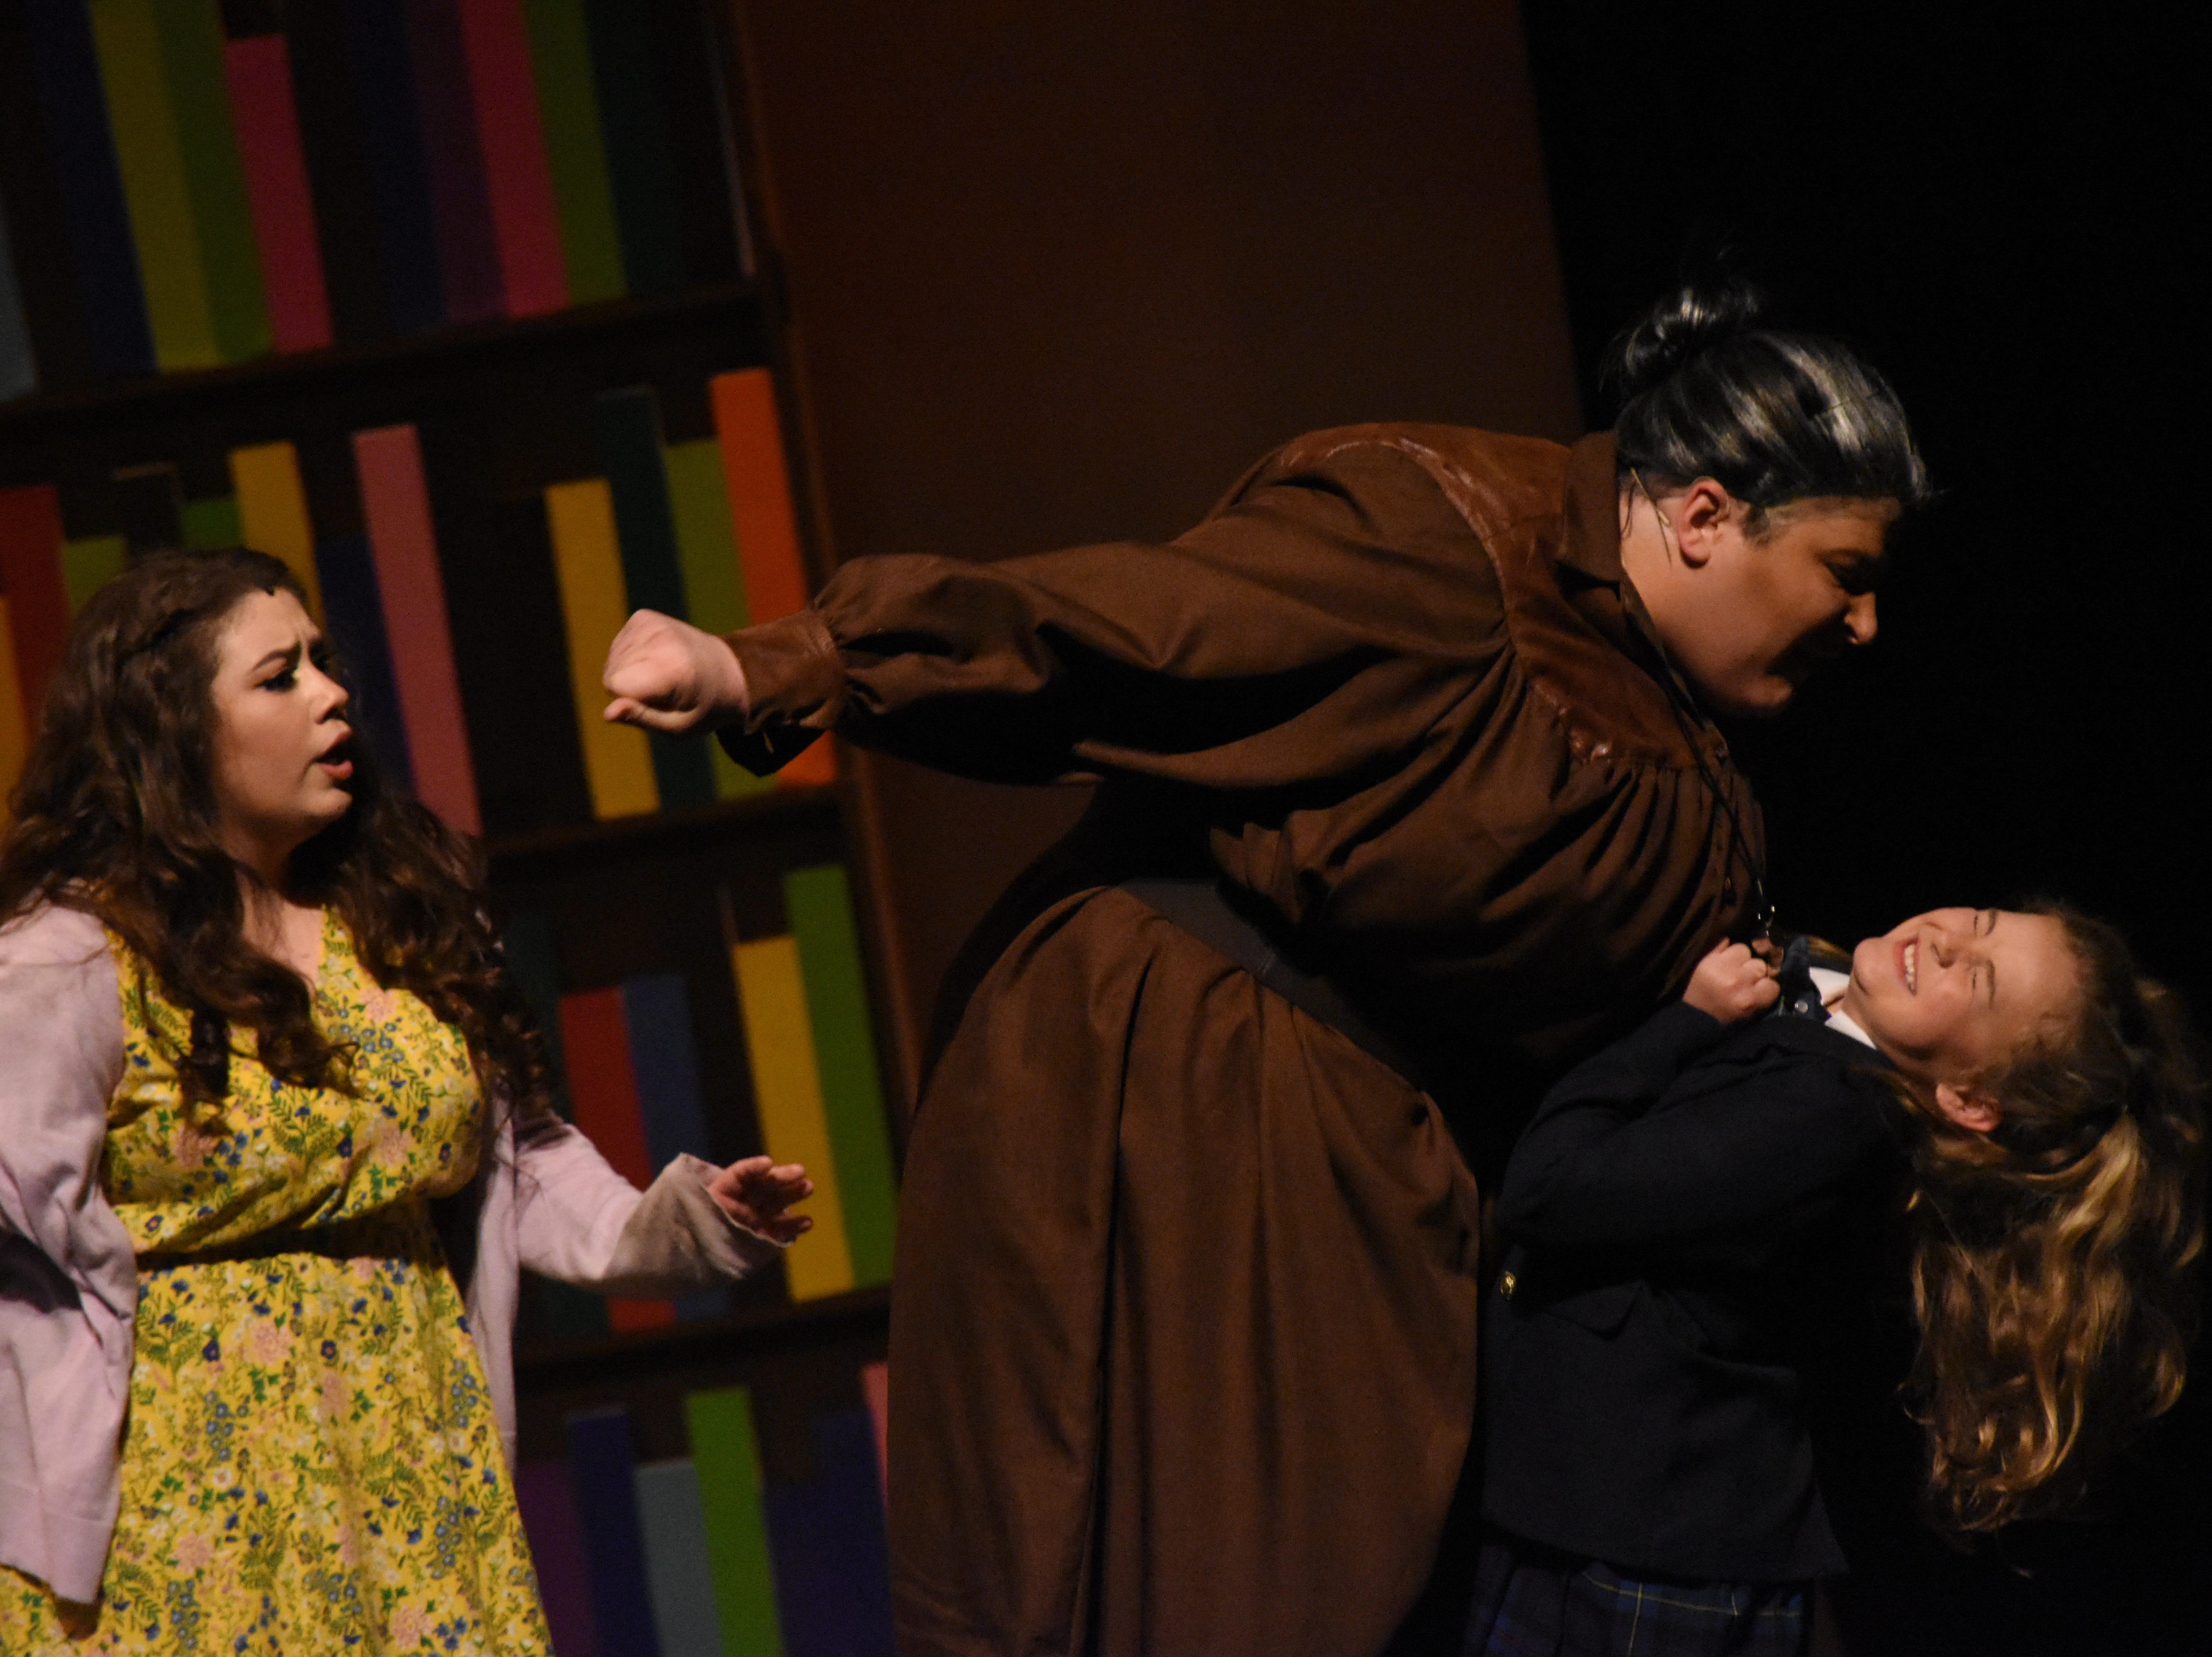 """Evie LaFleur (right) stars as Matilda, Brady Sanders as the evil school headmistress Miss Trunchbull and Lesley Brunk as Matilda's kind teacher Miss Honey in Lagniappe Theatre Company's presentation of """"Matilda the Musical"""" based on the book by Roald Dahl. The show begins at 7 p.m. Thursday, Friday and Saturday and at 2:30 p.m. Sunday at the Coughlin-Saunders Performing Arts Center in downtown Alexandria. Also starring as Matilda is Chloe Lair. """"Matilda the Musical"""" is the story of an intelligent young girl who is born into an unloving family. She is sent away to school where her kind schoolteacher is impressed with her. The school's headmistress, however, doesn't like children doles out cruel punishments for those who break her rules."""